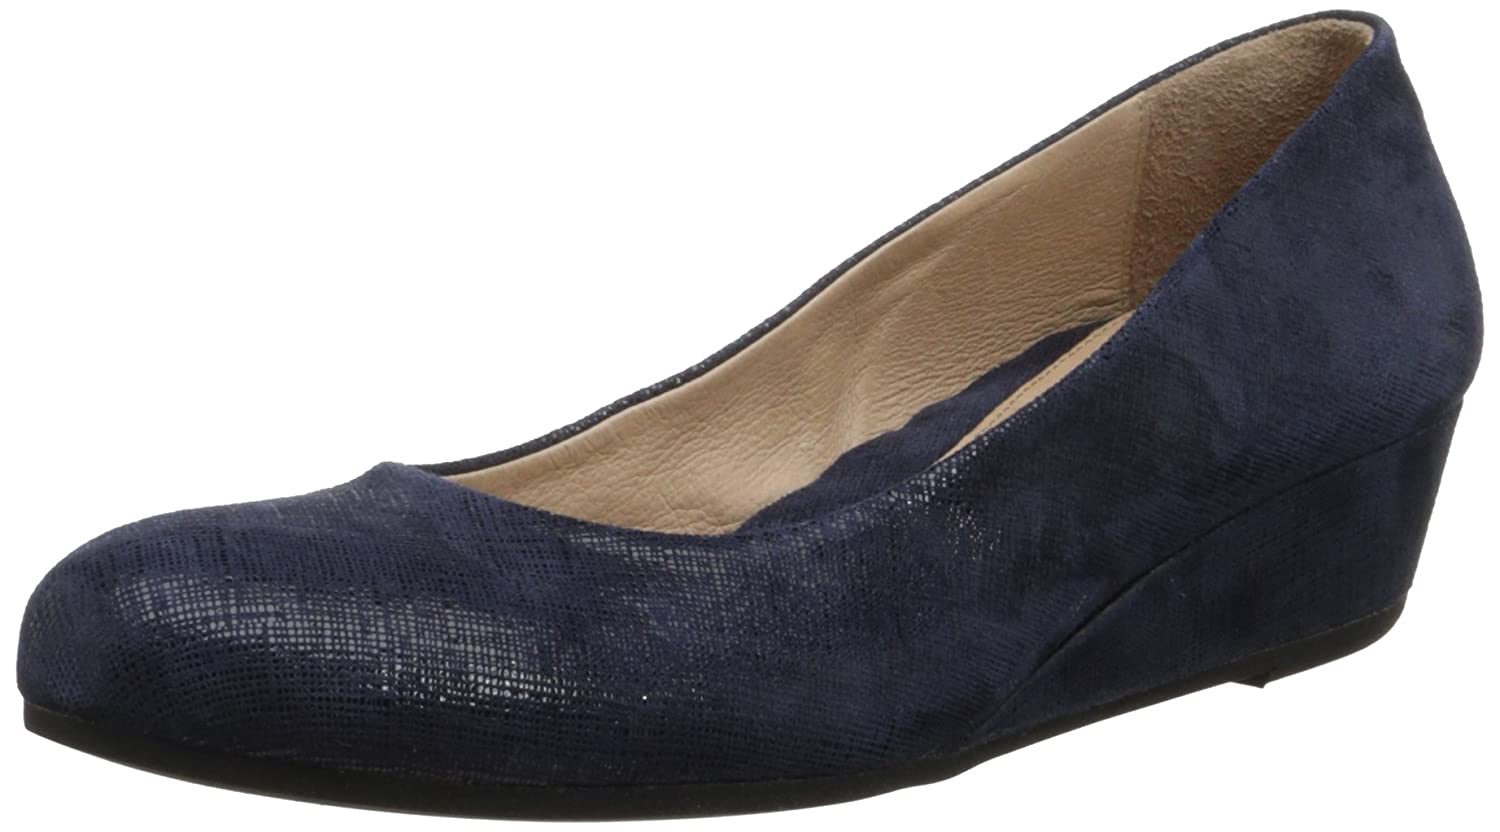 French Sole FS/NY Women's Gumdrop Wedge Pump B00C40WMXW 6.5 B(M) US|Navy Cartizze